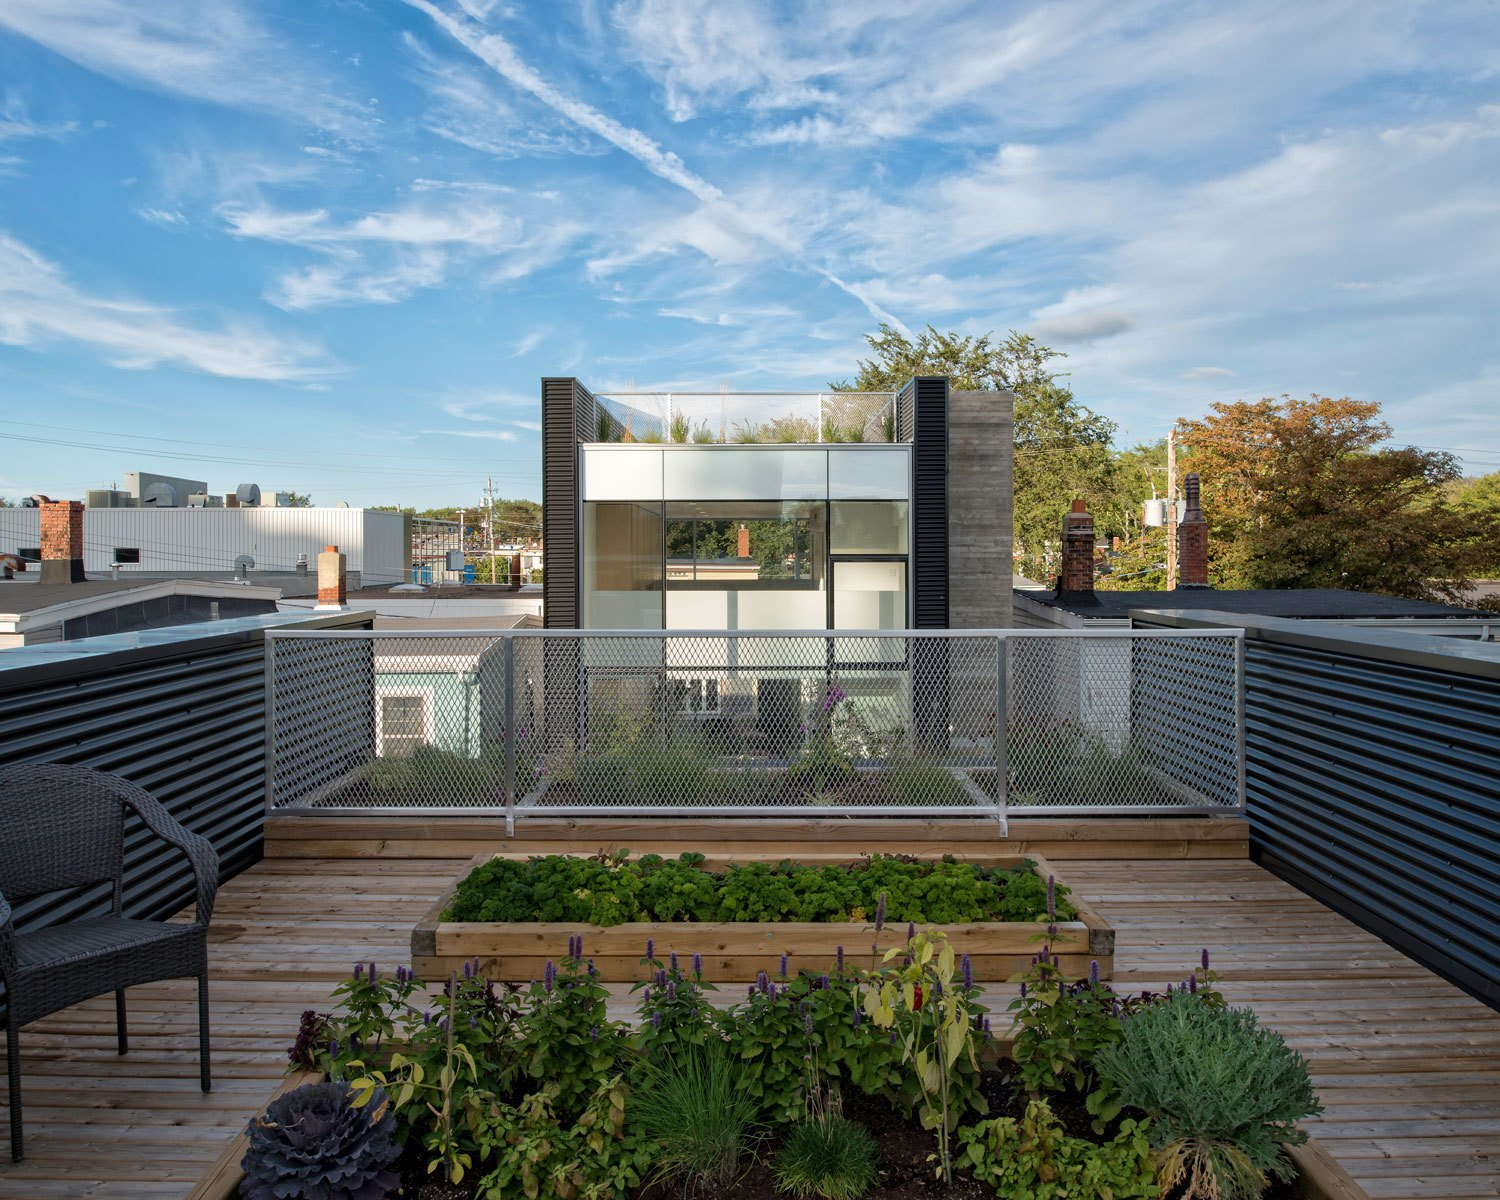 """On the lower roof, cedar decking and flower beds define one of several outdoor gardening spaces. Part of her ongoing research into the livability of cities, Fitzgerald aimed to create landscaped areas that were """"aesthetic, aromatic, educational, and productive."""" The deck is bordered by an expanded aluminum mesh railing and black metal corrugated panels. Tagged: Outdoor, Rooftop, Raised Planters, Vegetables, Flowers, Small Patio, Porch, Deck, Vertical Fences, Wall, Wood Patio, Porch, Deck, and Metal Fences, Wall.  Photo 3 of 9 in The Architect Next Door"""